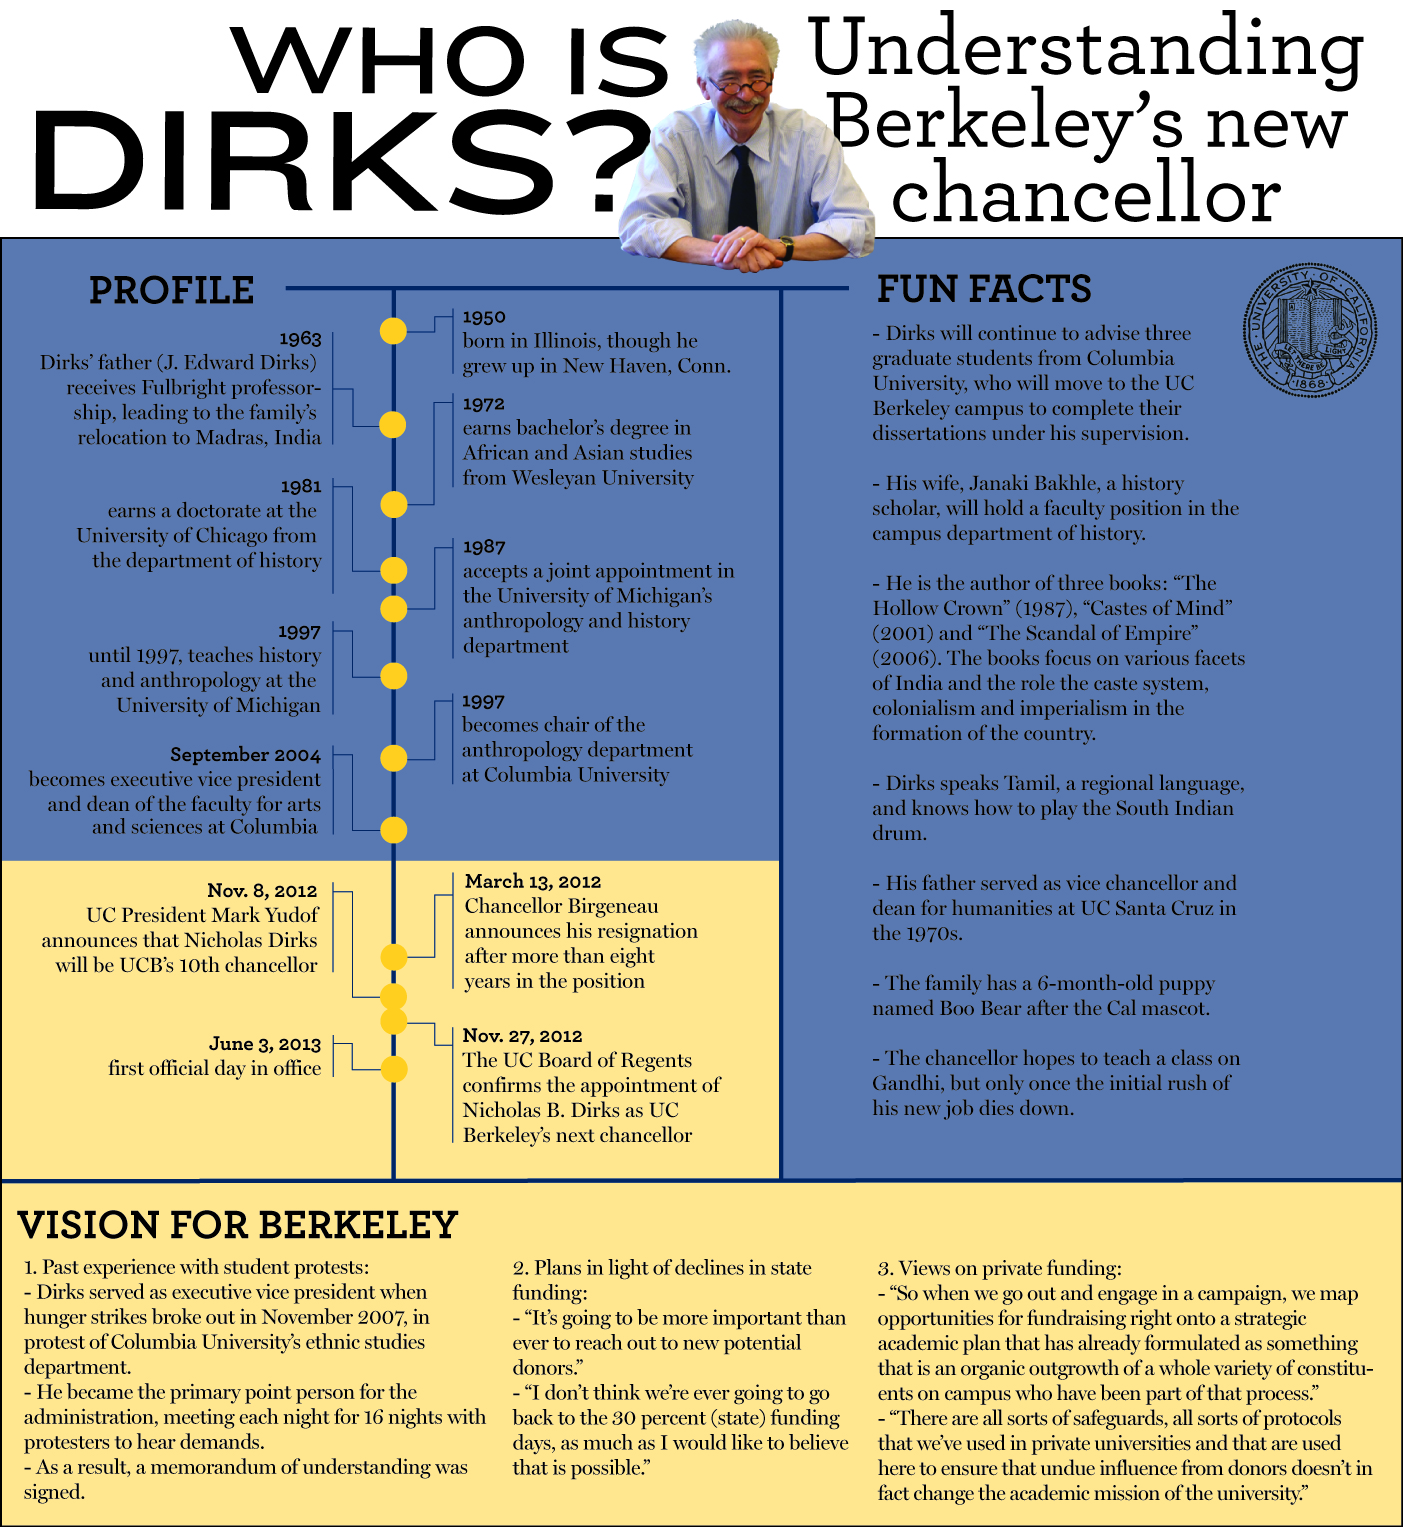 Dirks, visualized